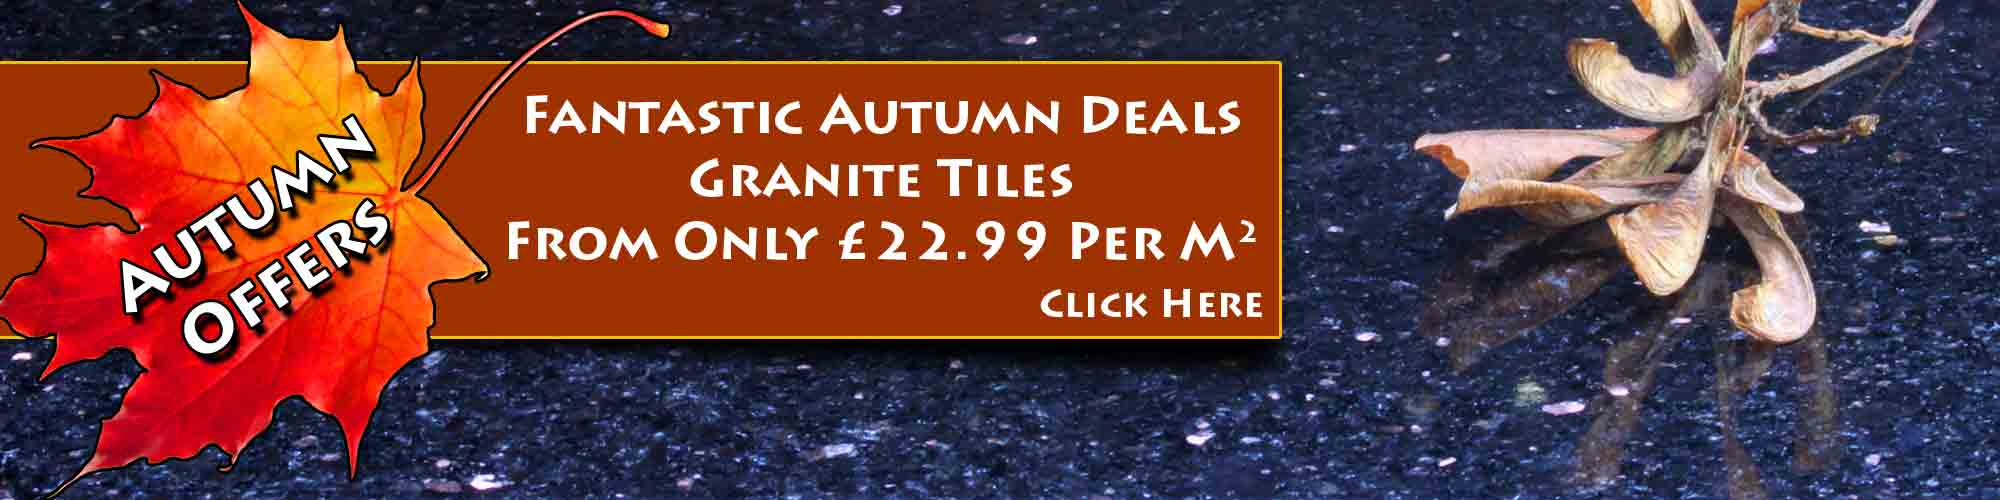 Autumn Deals on Granite Tiles - November Offers